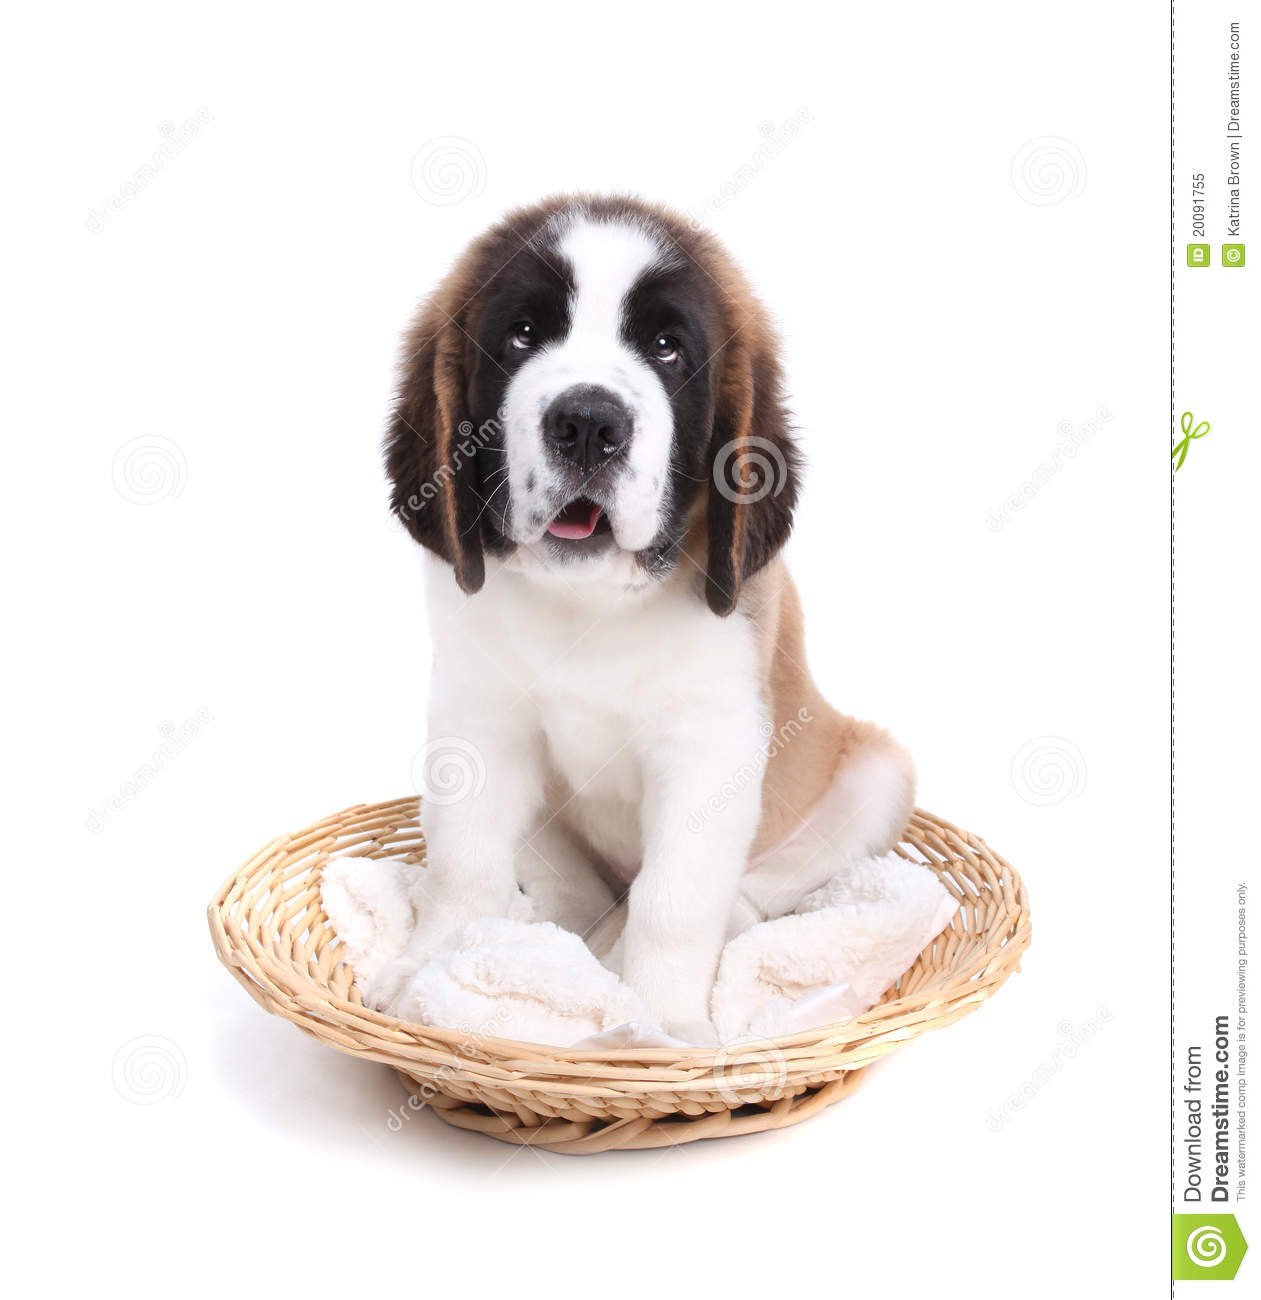 crushed dreams of having a saint bernard pup This guy must have been crushed to death  find this pin and more on saint bernards by lisa christiansen dream come true dog  gorgeous saint bernard puppy too .